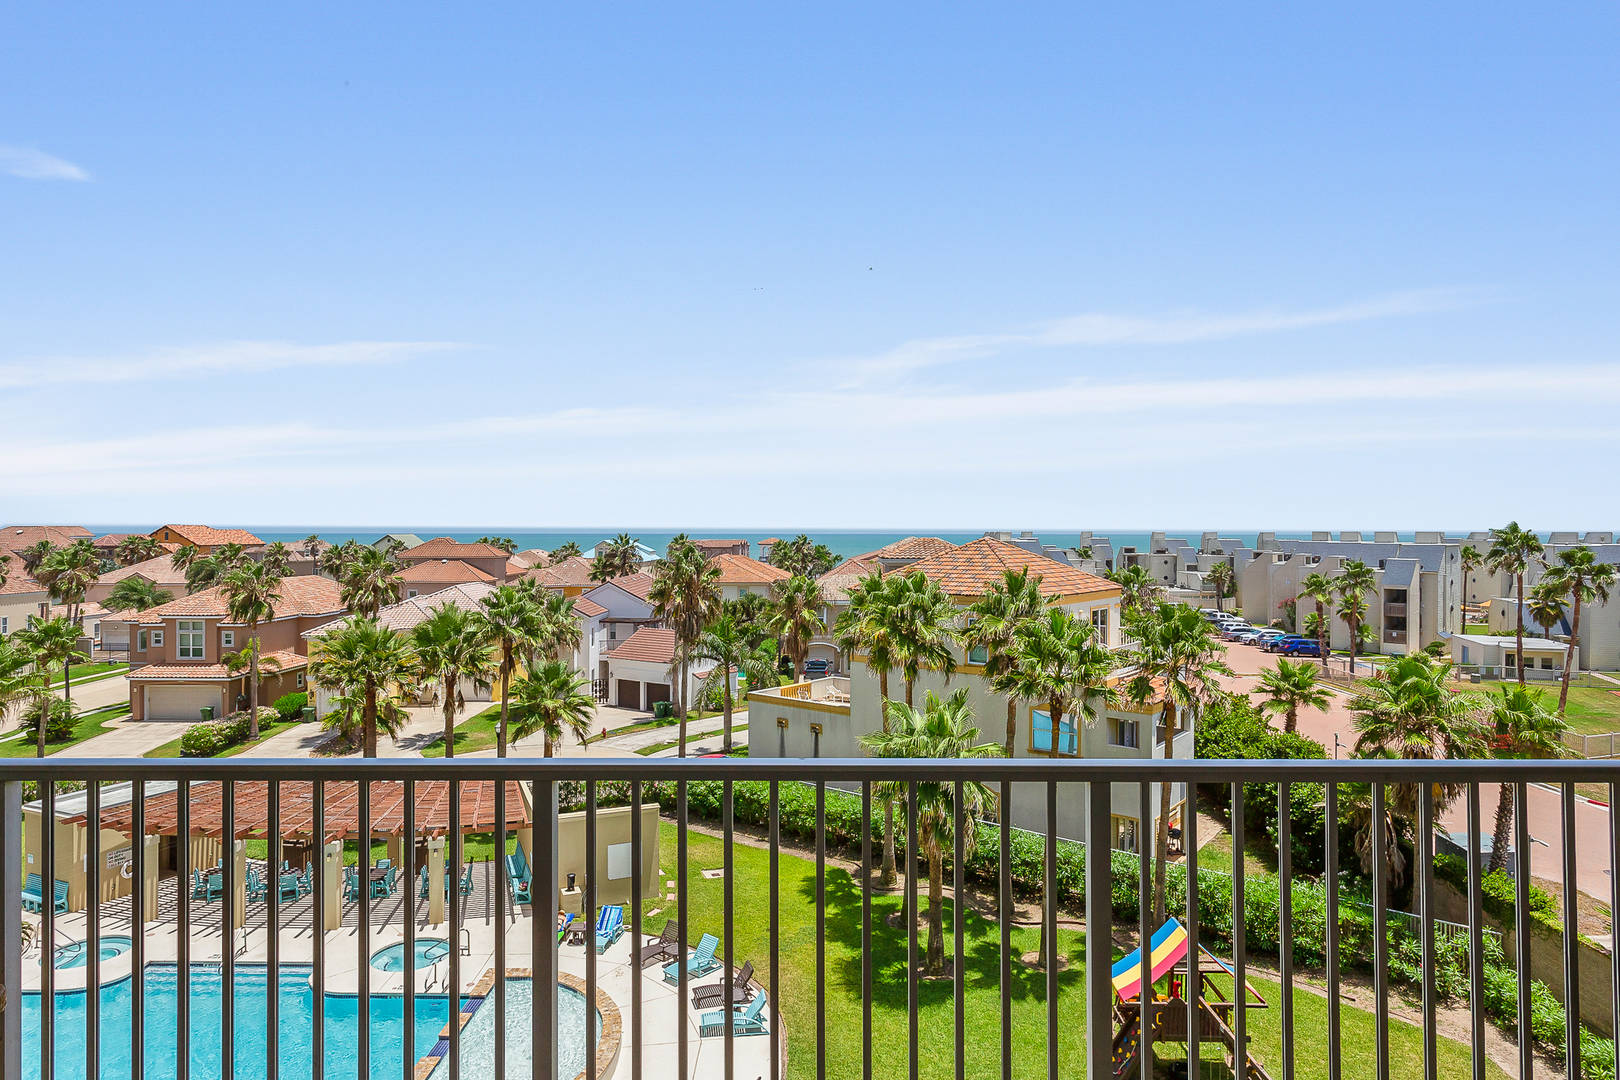 111 E. Hacienda Boulevard Unit 401 South Padre Island, TX 78597